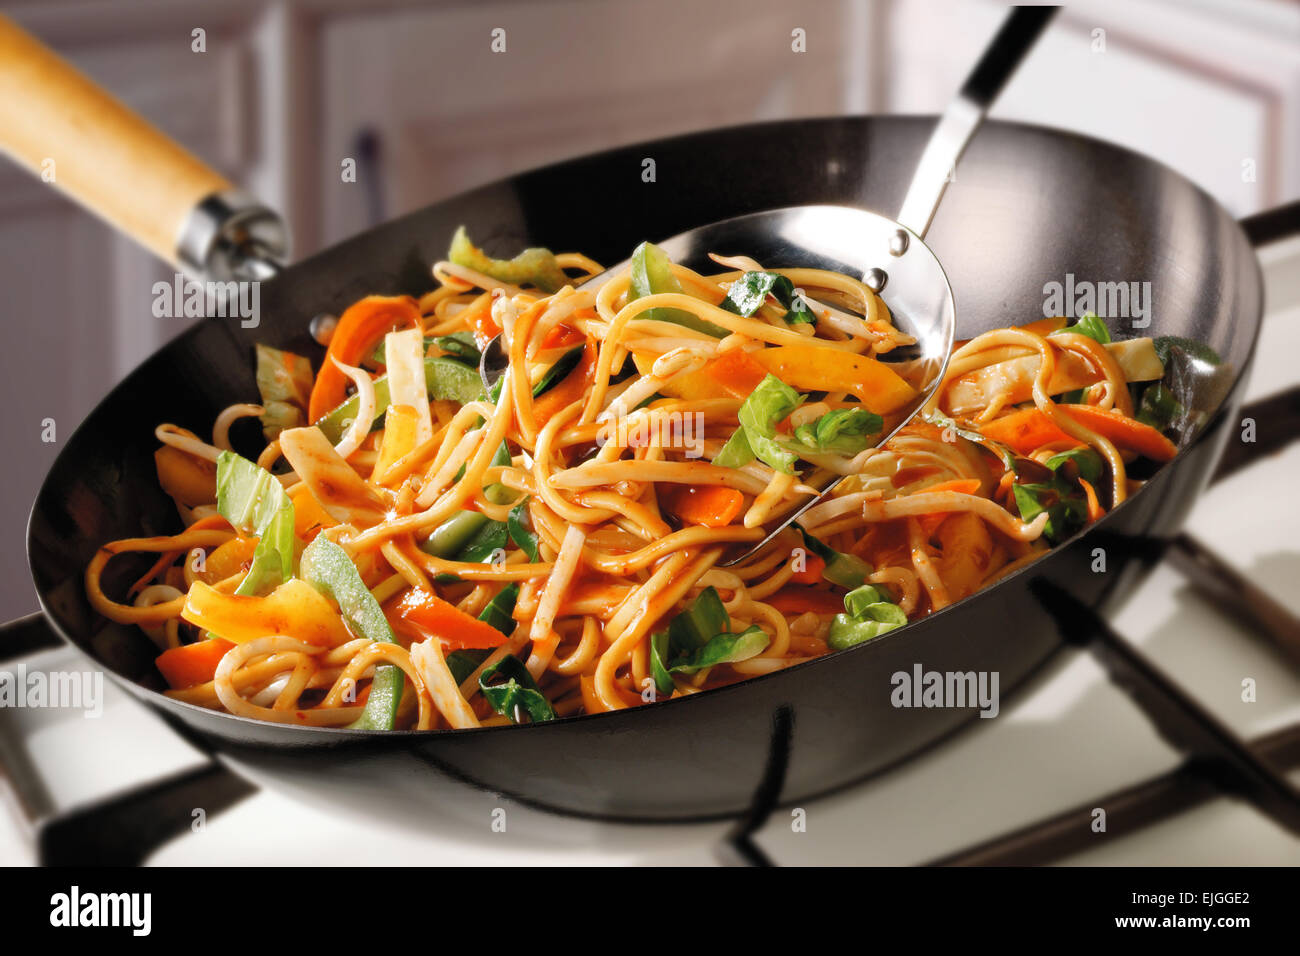 Stir Fry Noodles, pak choi, carrots & bean shoots being cooked - Stock Image